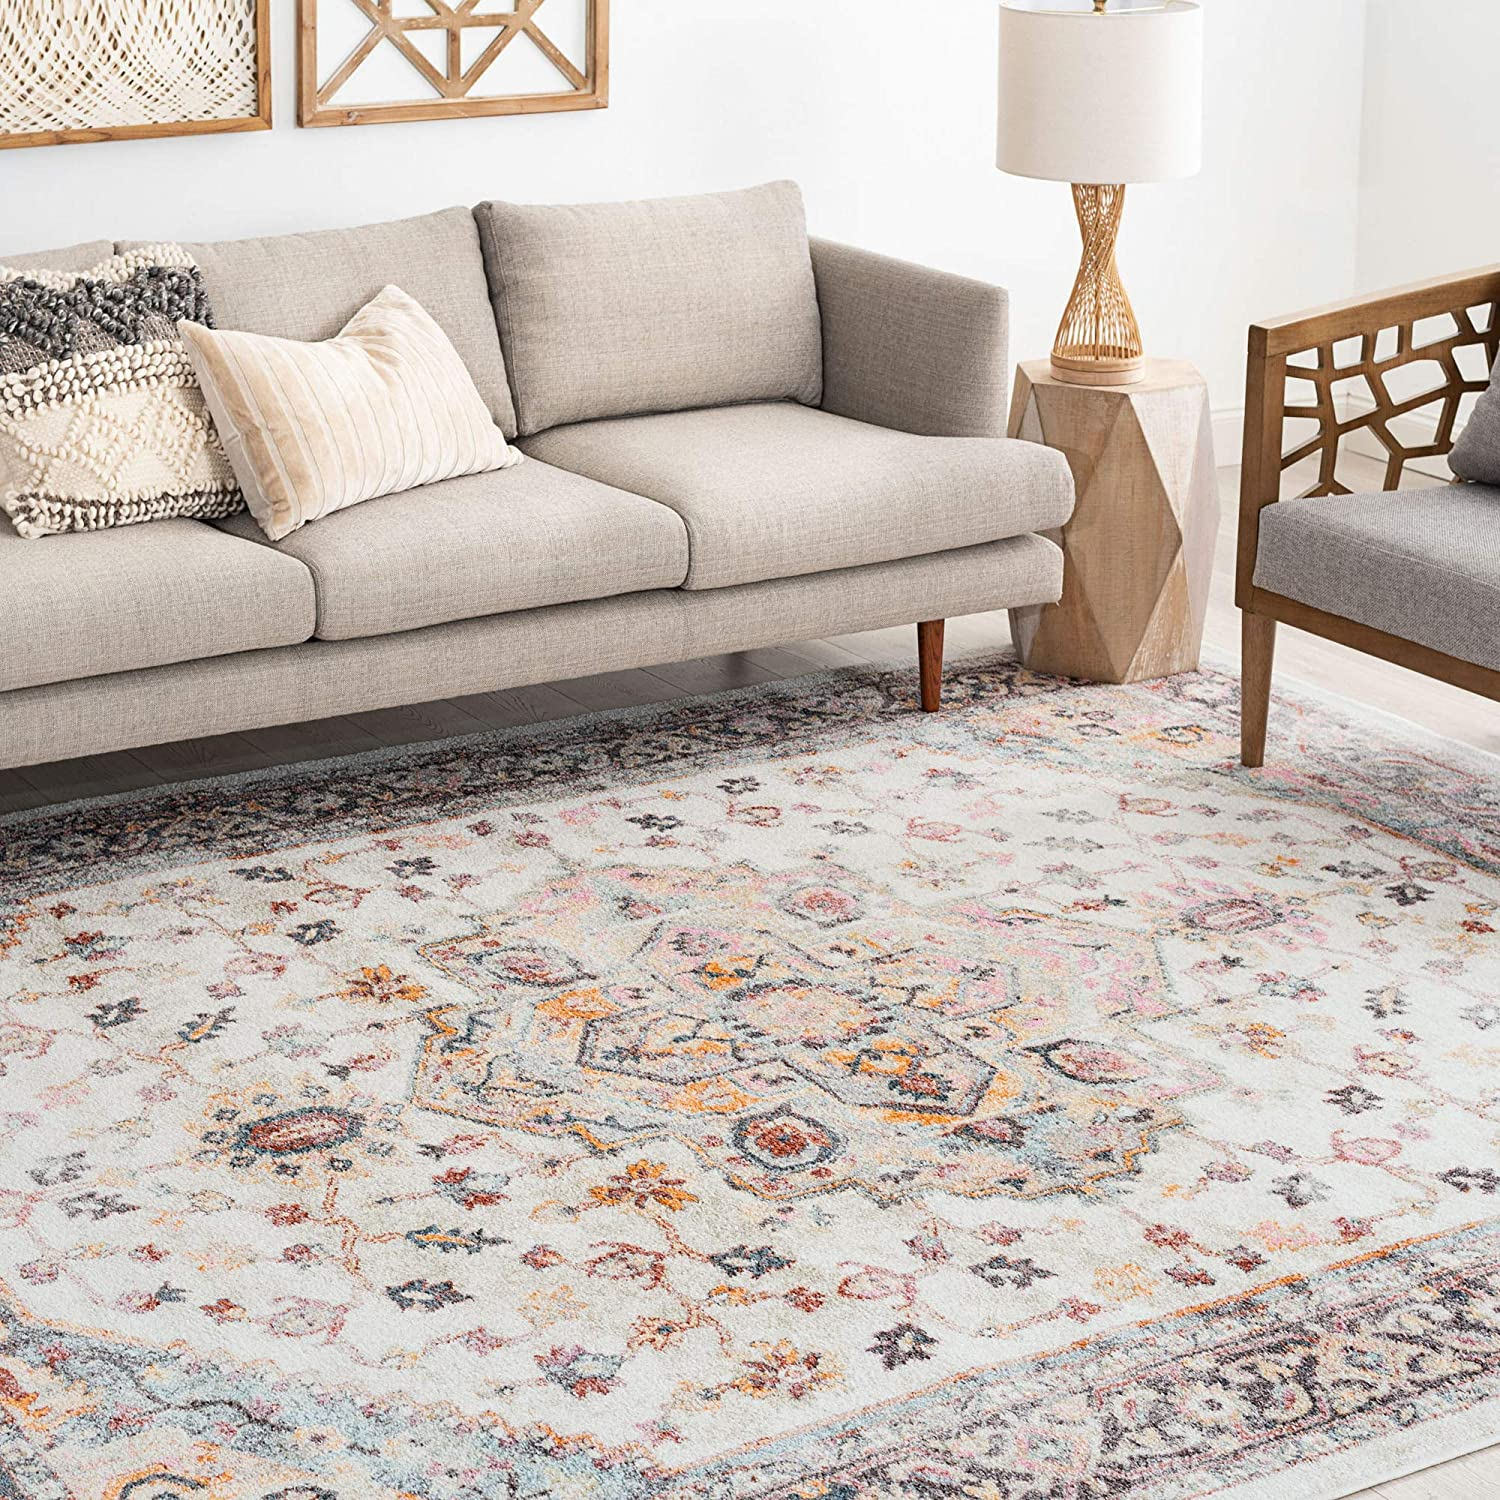 Amazon Com Kinsley Taupe 8x10 Rectangle Area Rug For Living Bedroom Or Dining Room Traditional Oriental Kitchen Dining